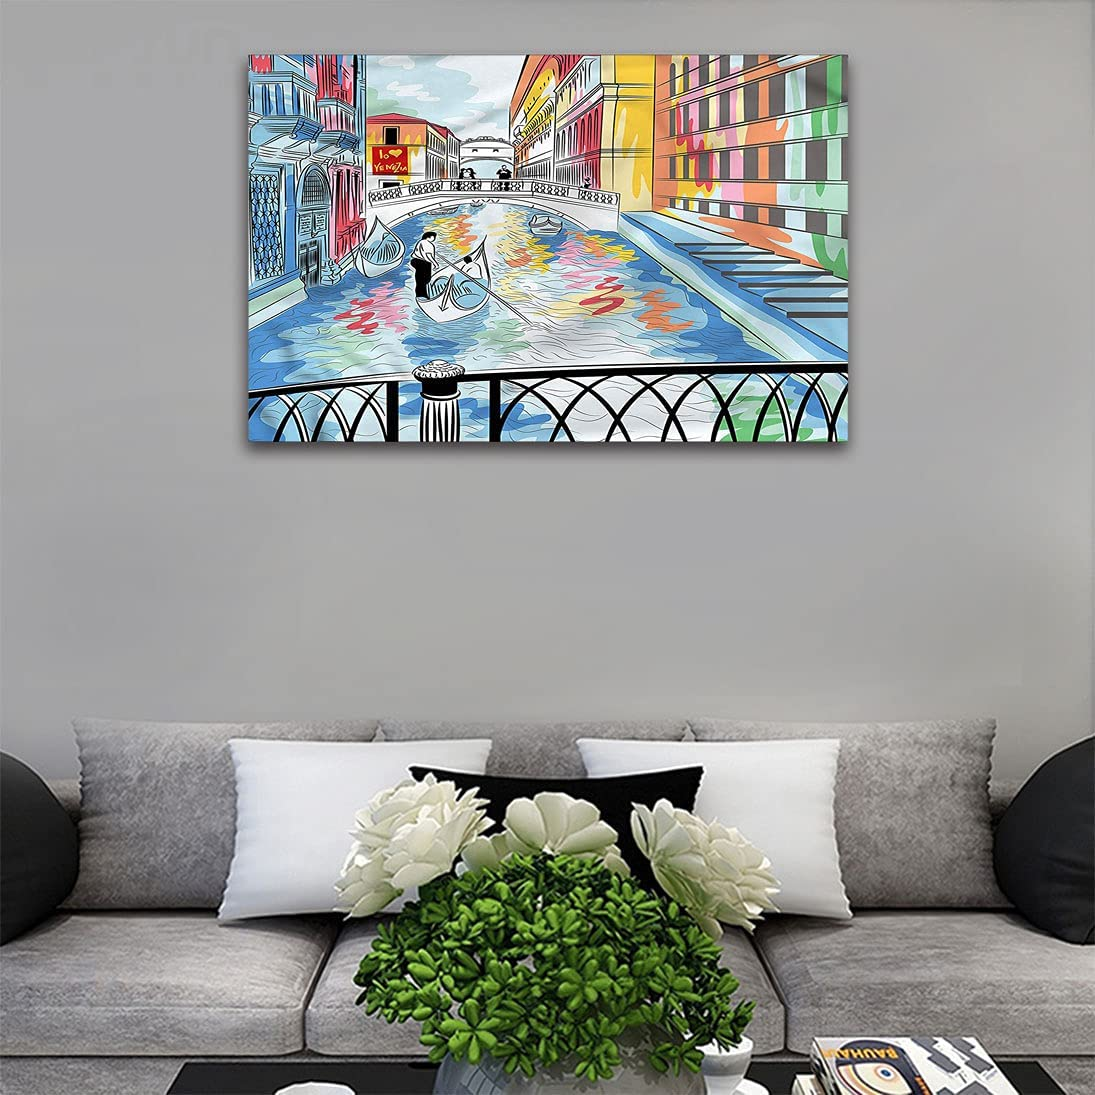 Venice Bombing free shipping Canvas Wall Painting Colorful Sketch a Landscape of B The Safety and trust